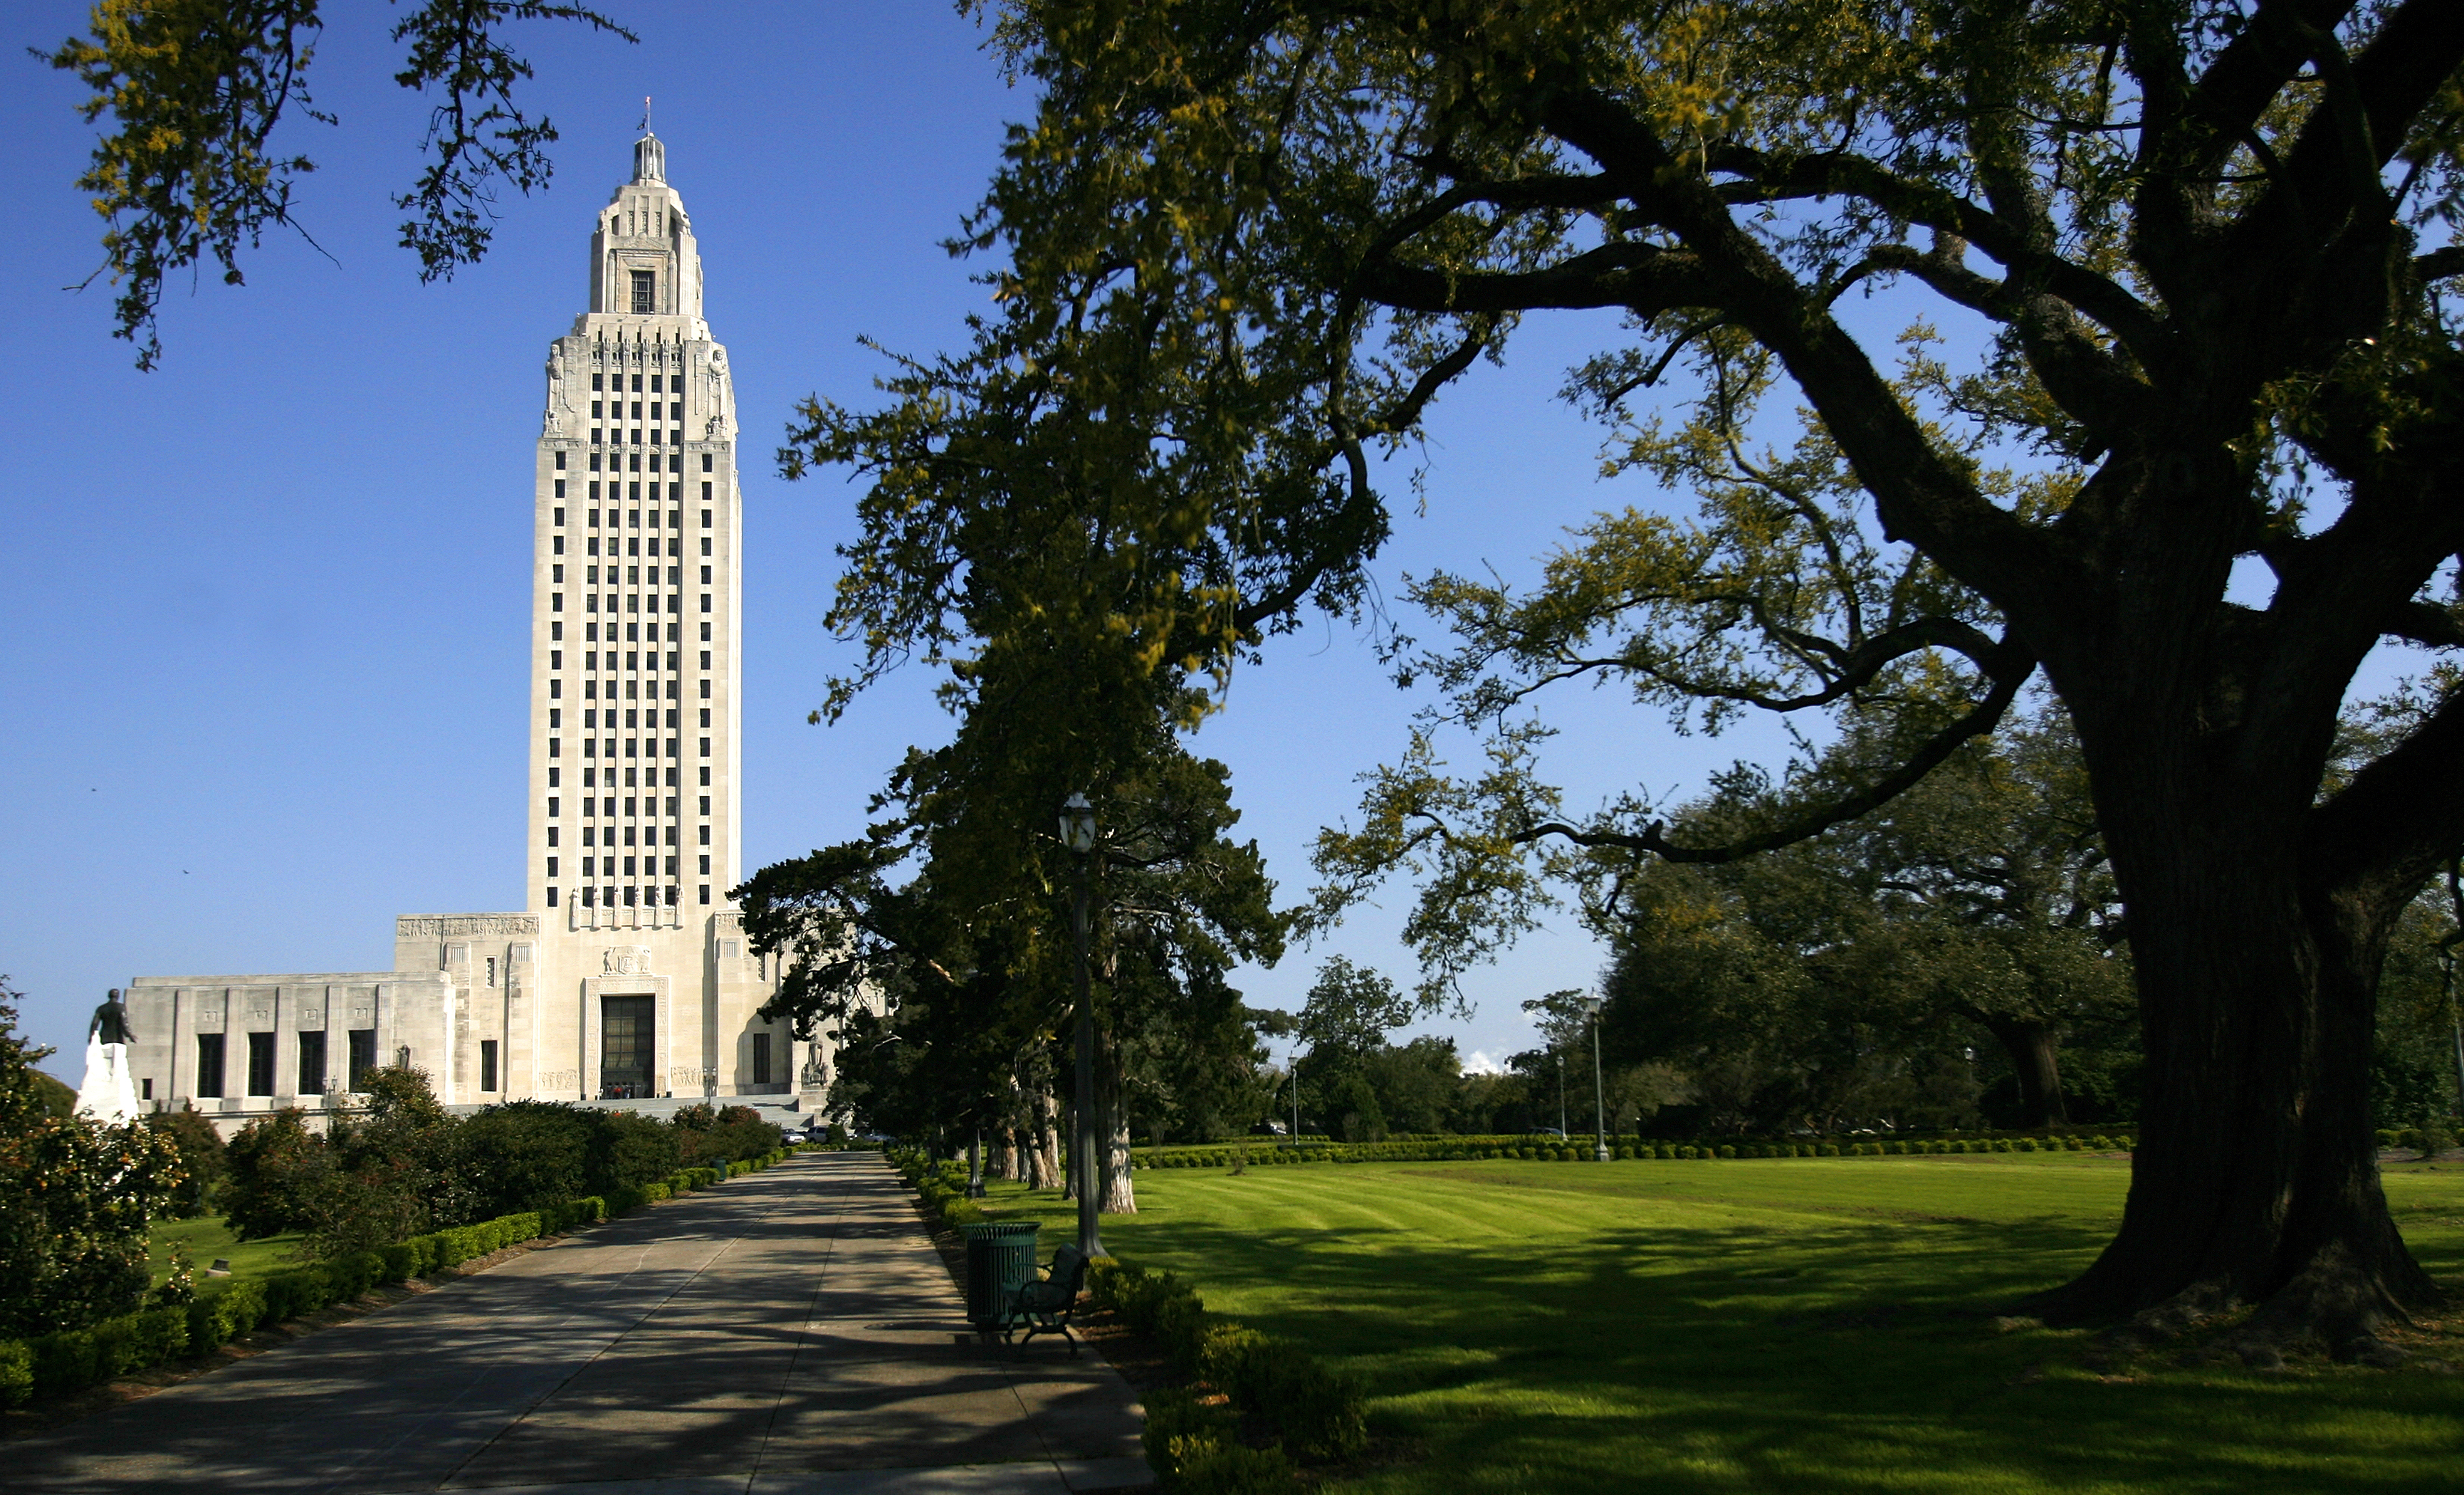 Louisiana State Capitol in Baton Rouge, photographed March 18, 2010.